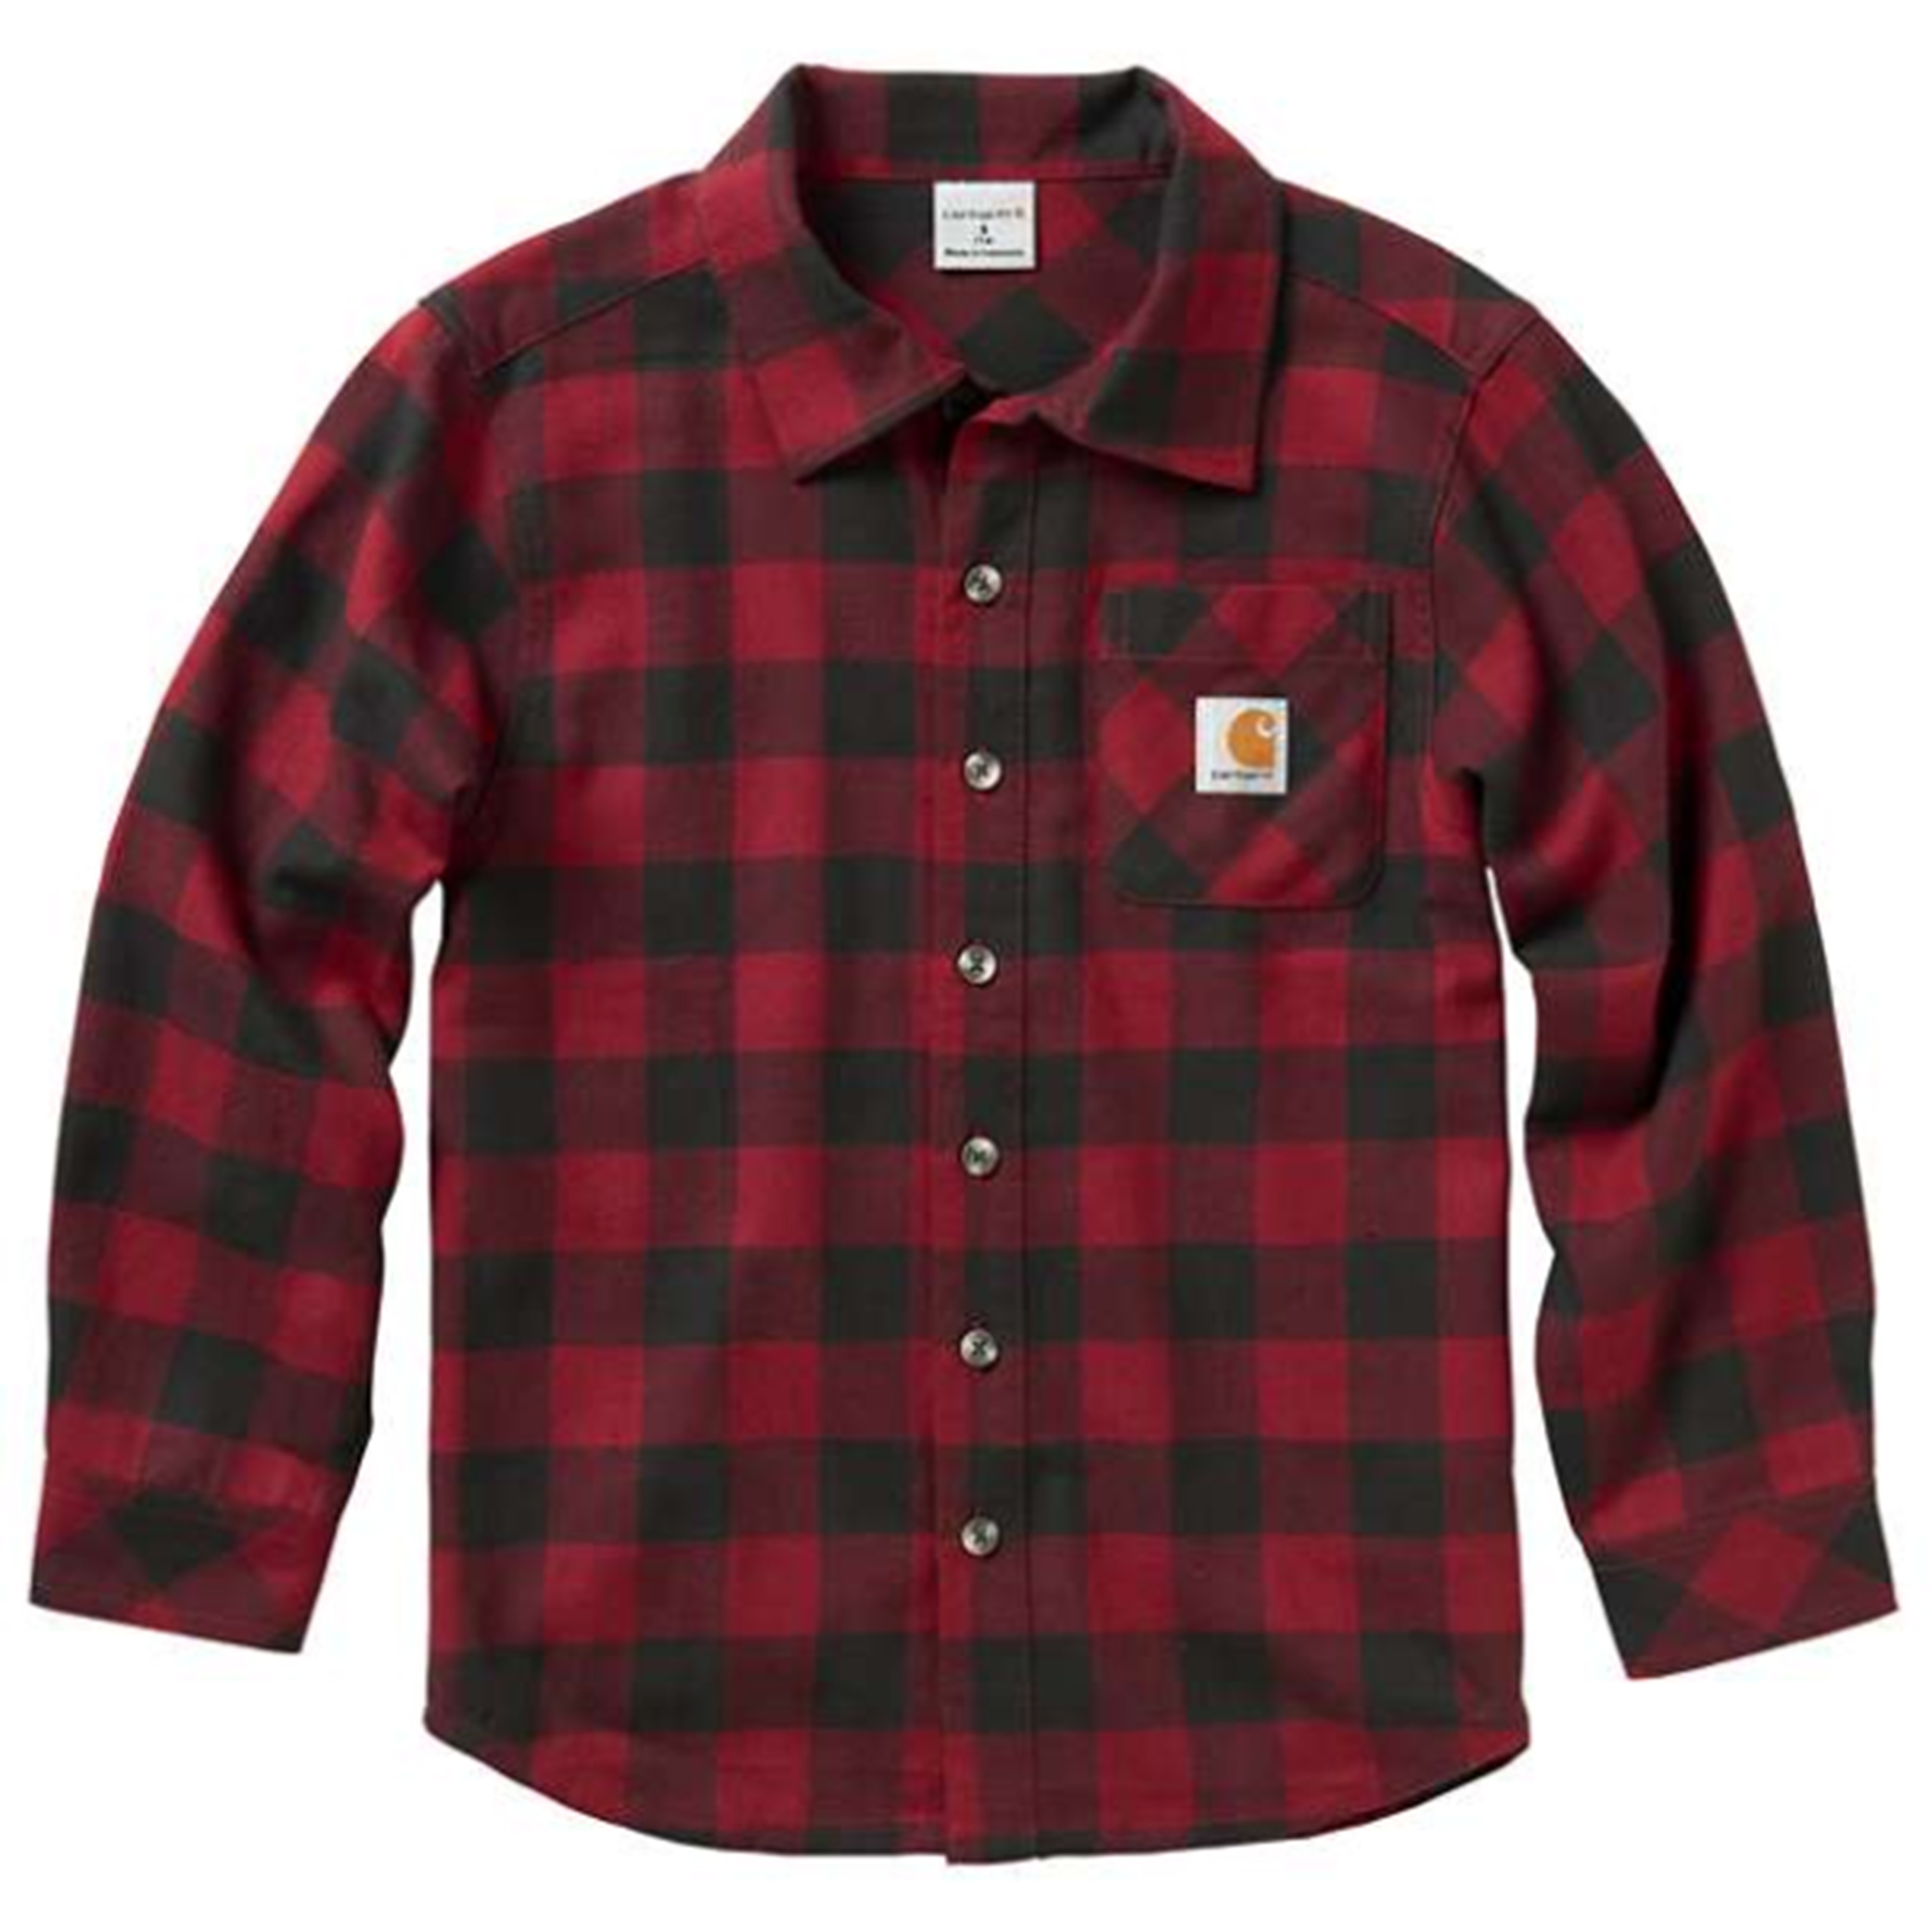 Youth Long Sleeve Plaid Shirt, Red/Black, swatch